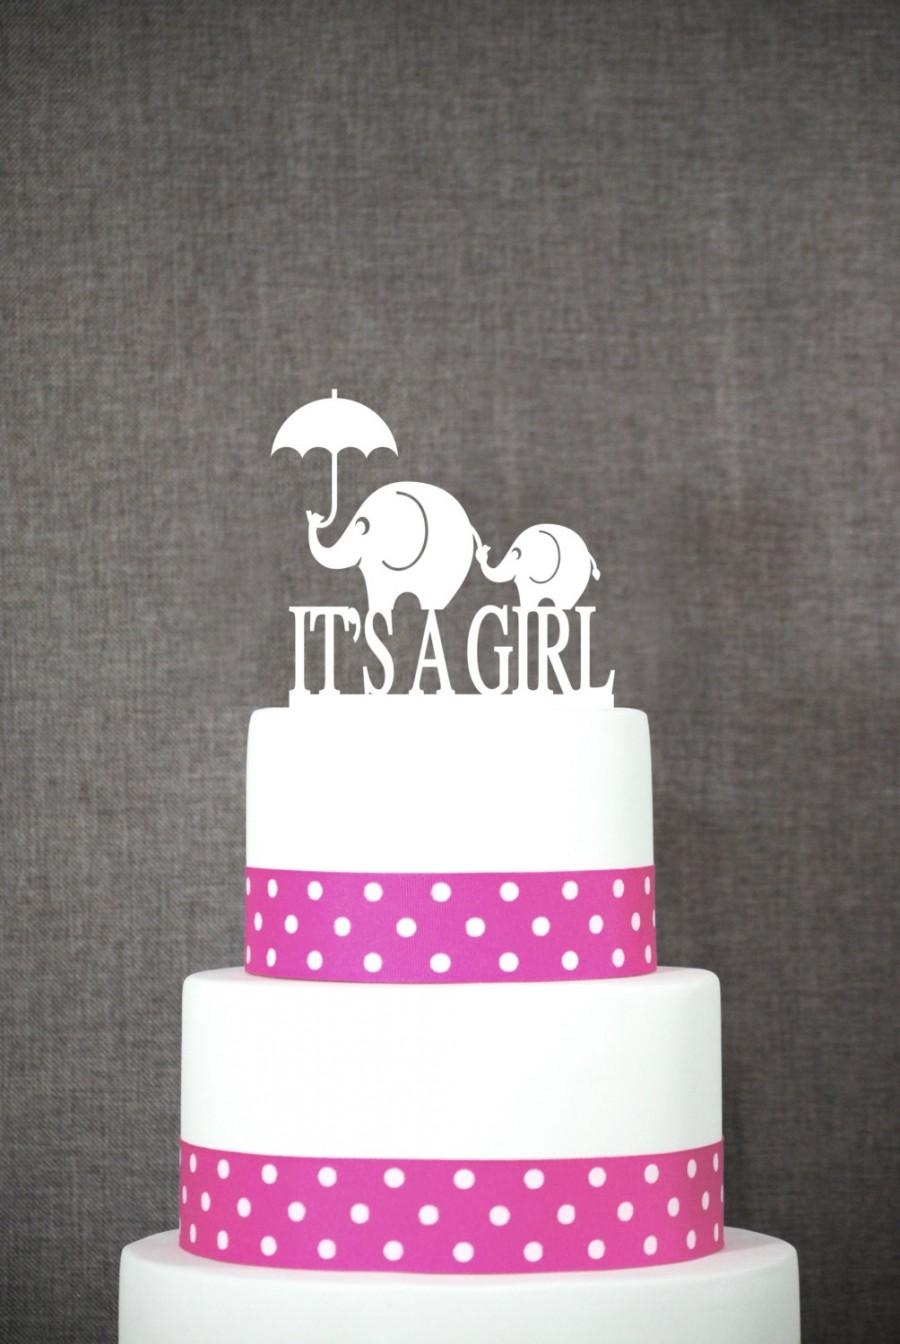 Mariage - Elephant Cake Topper - It's A Girl Cake Topper by Chicago Factory - (S043)